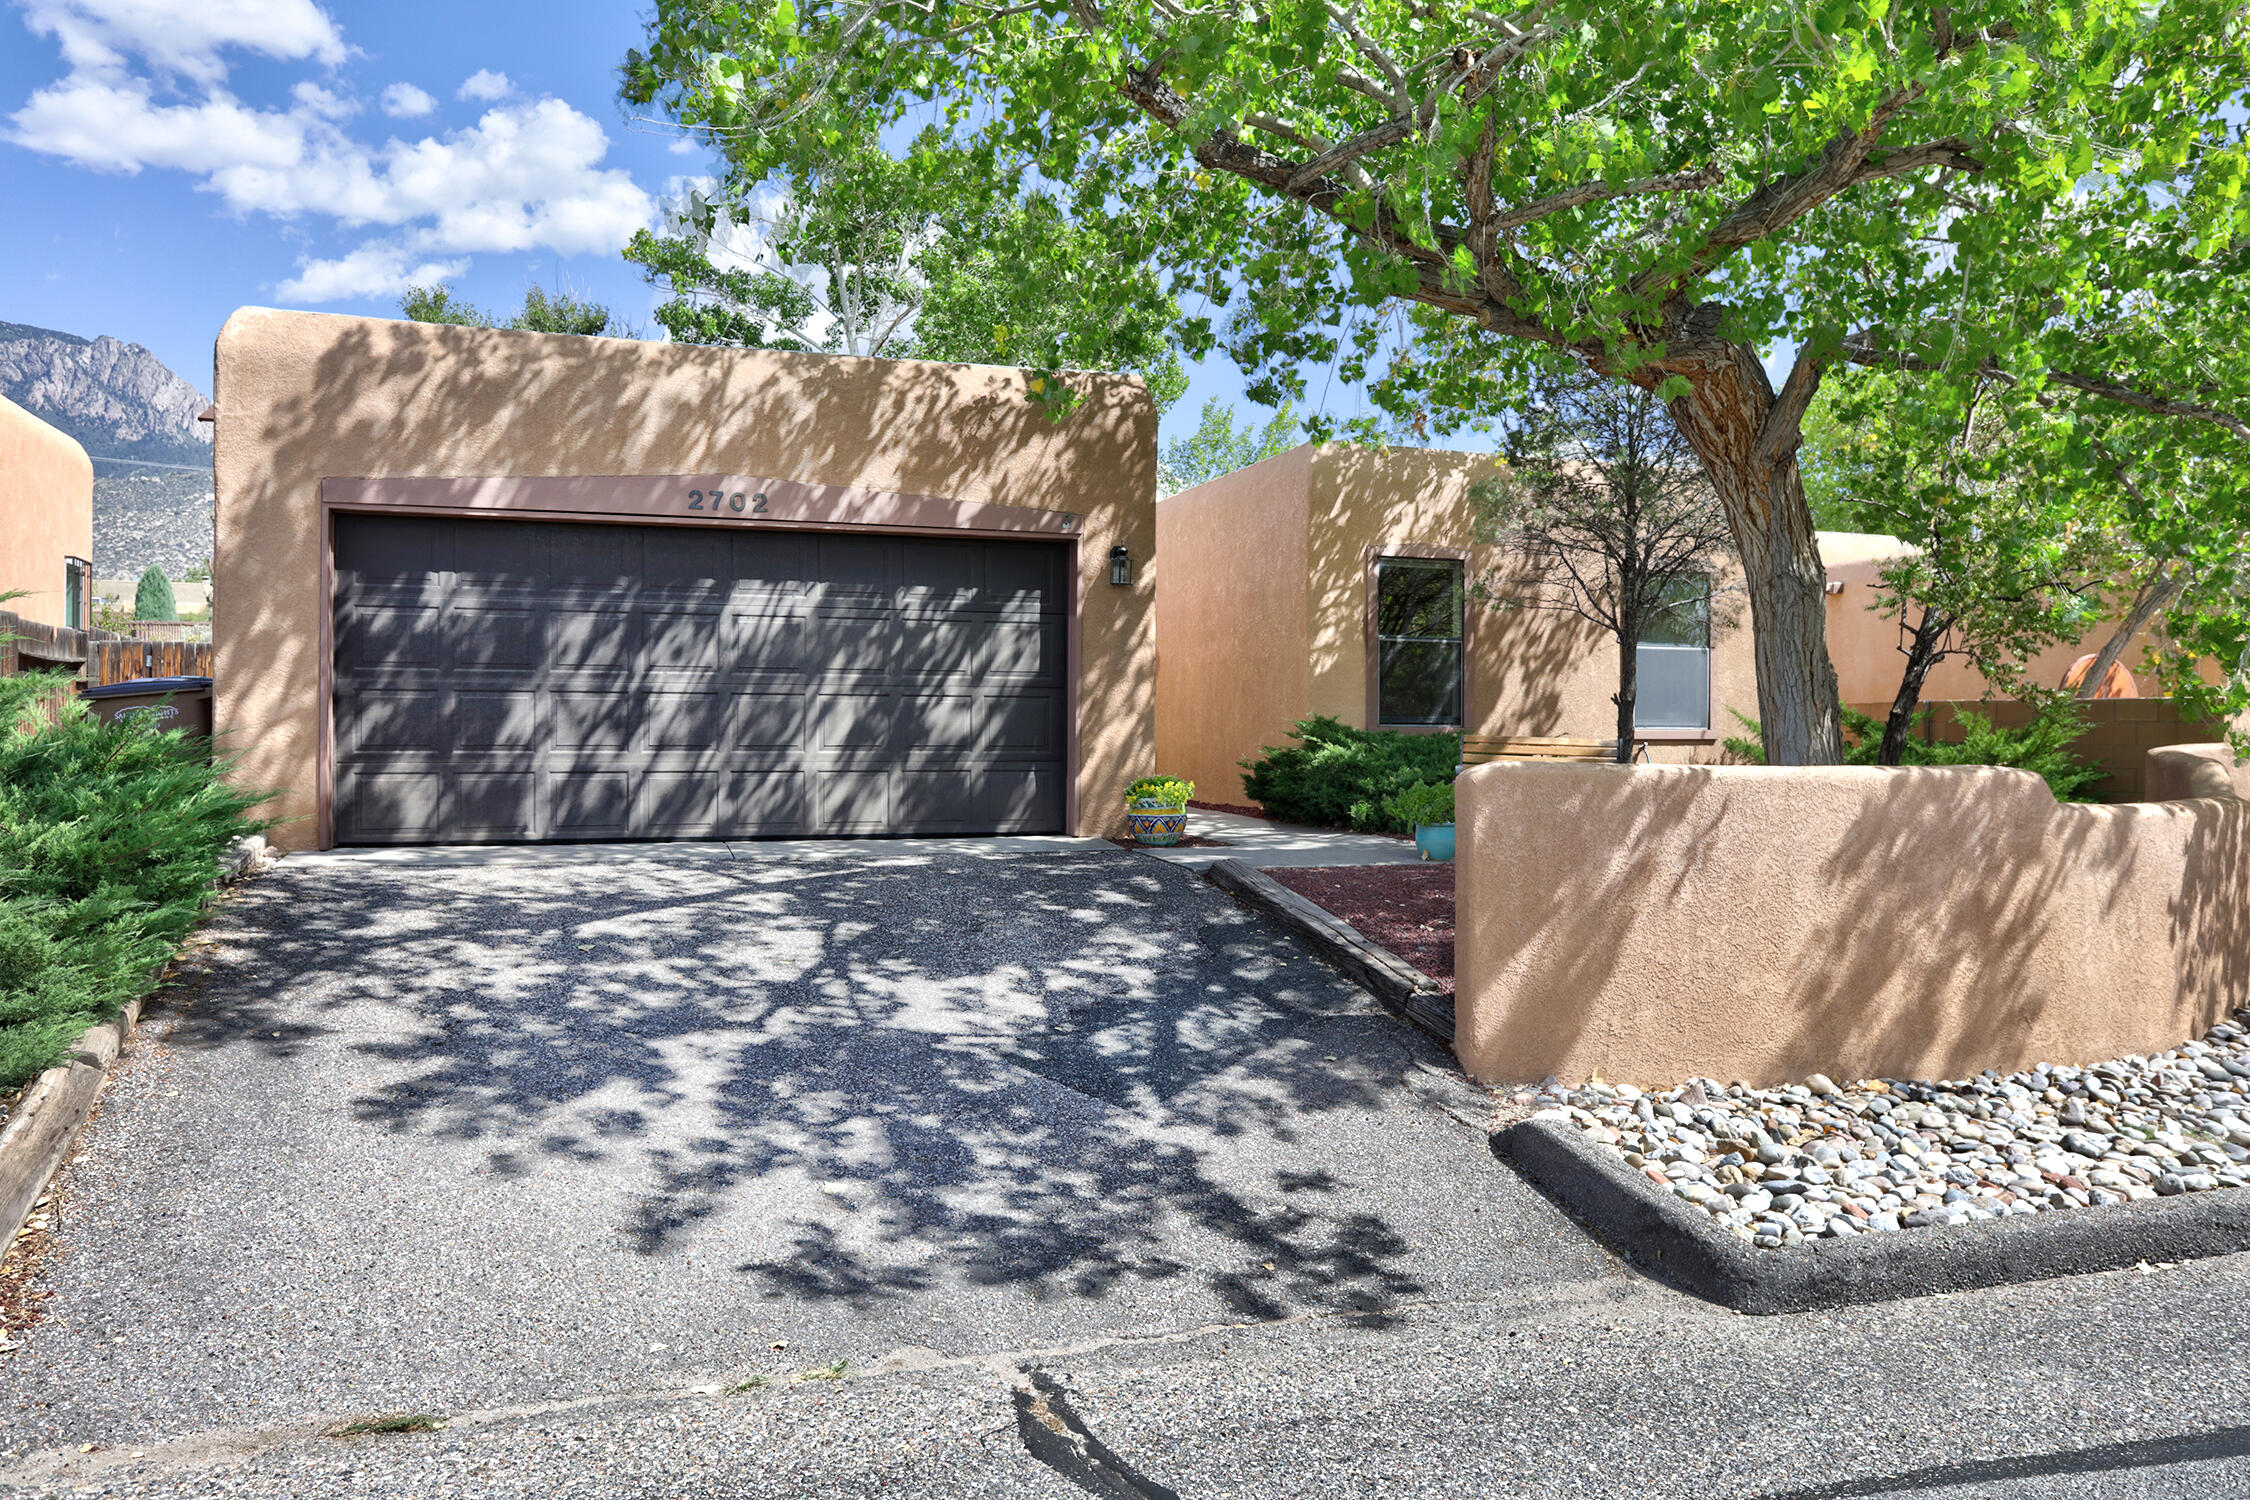 How about a beautiful home to host the Holidays! Don't miss this well-maintained pueblo-style gem conveniently located on a quiet street in Sandia Heights! Approach the sweet front courtyard & fall in love with the detail & thoughtful planting of natives & perennials. Charm continues inside w/ great-room open-floor-plan filled w/ natural light via high ceilings, clearstory windows, skylights & sliding glass door looking out to the backyard & stunning mountain views... you'll particularly love accent adobe walls & wood-burning fire place in the living room. Spacious owner's suite features large walk-in closet, double sinks & double-headed shower. Kitchen boasts large pantry & breakfast-bar seating perfect for multi-room entertaining. East bedroom is ideal for home office. Come fall in love.